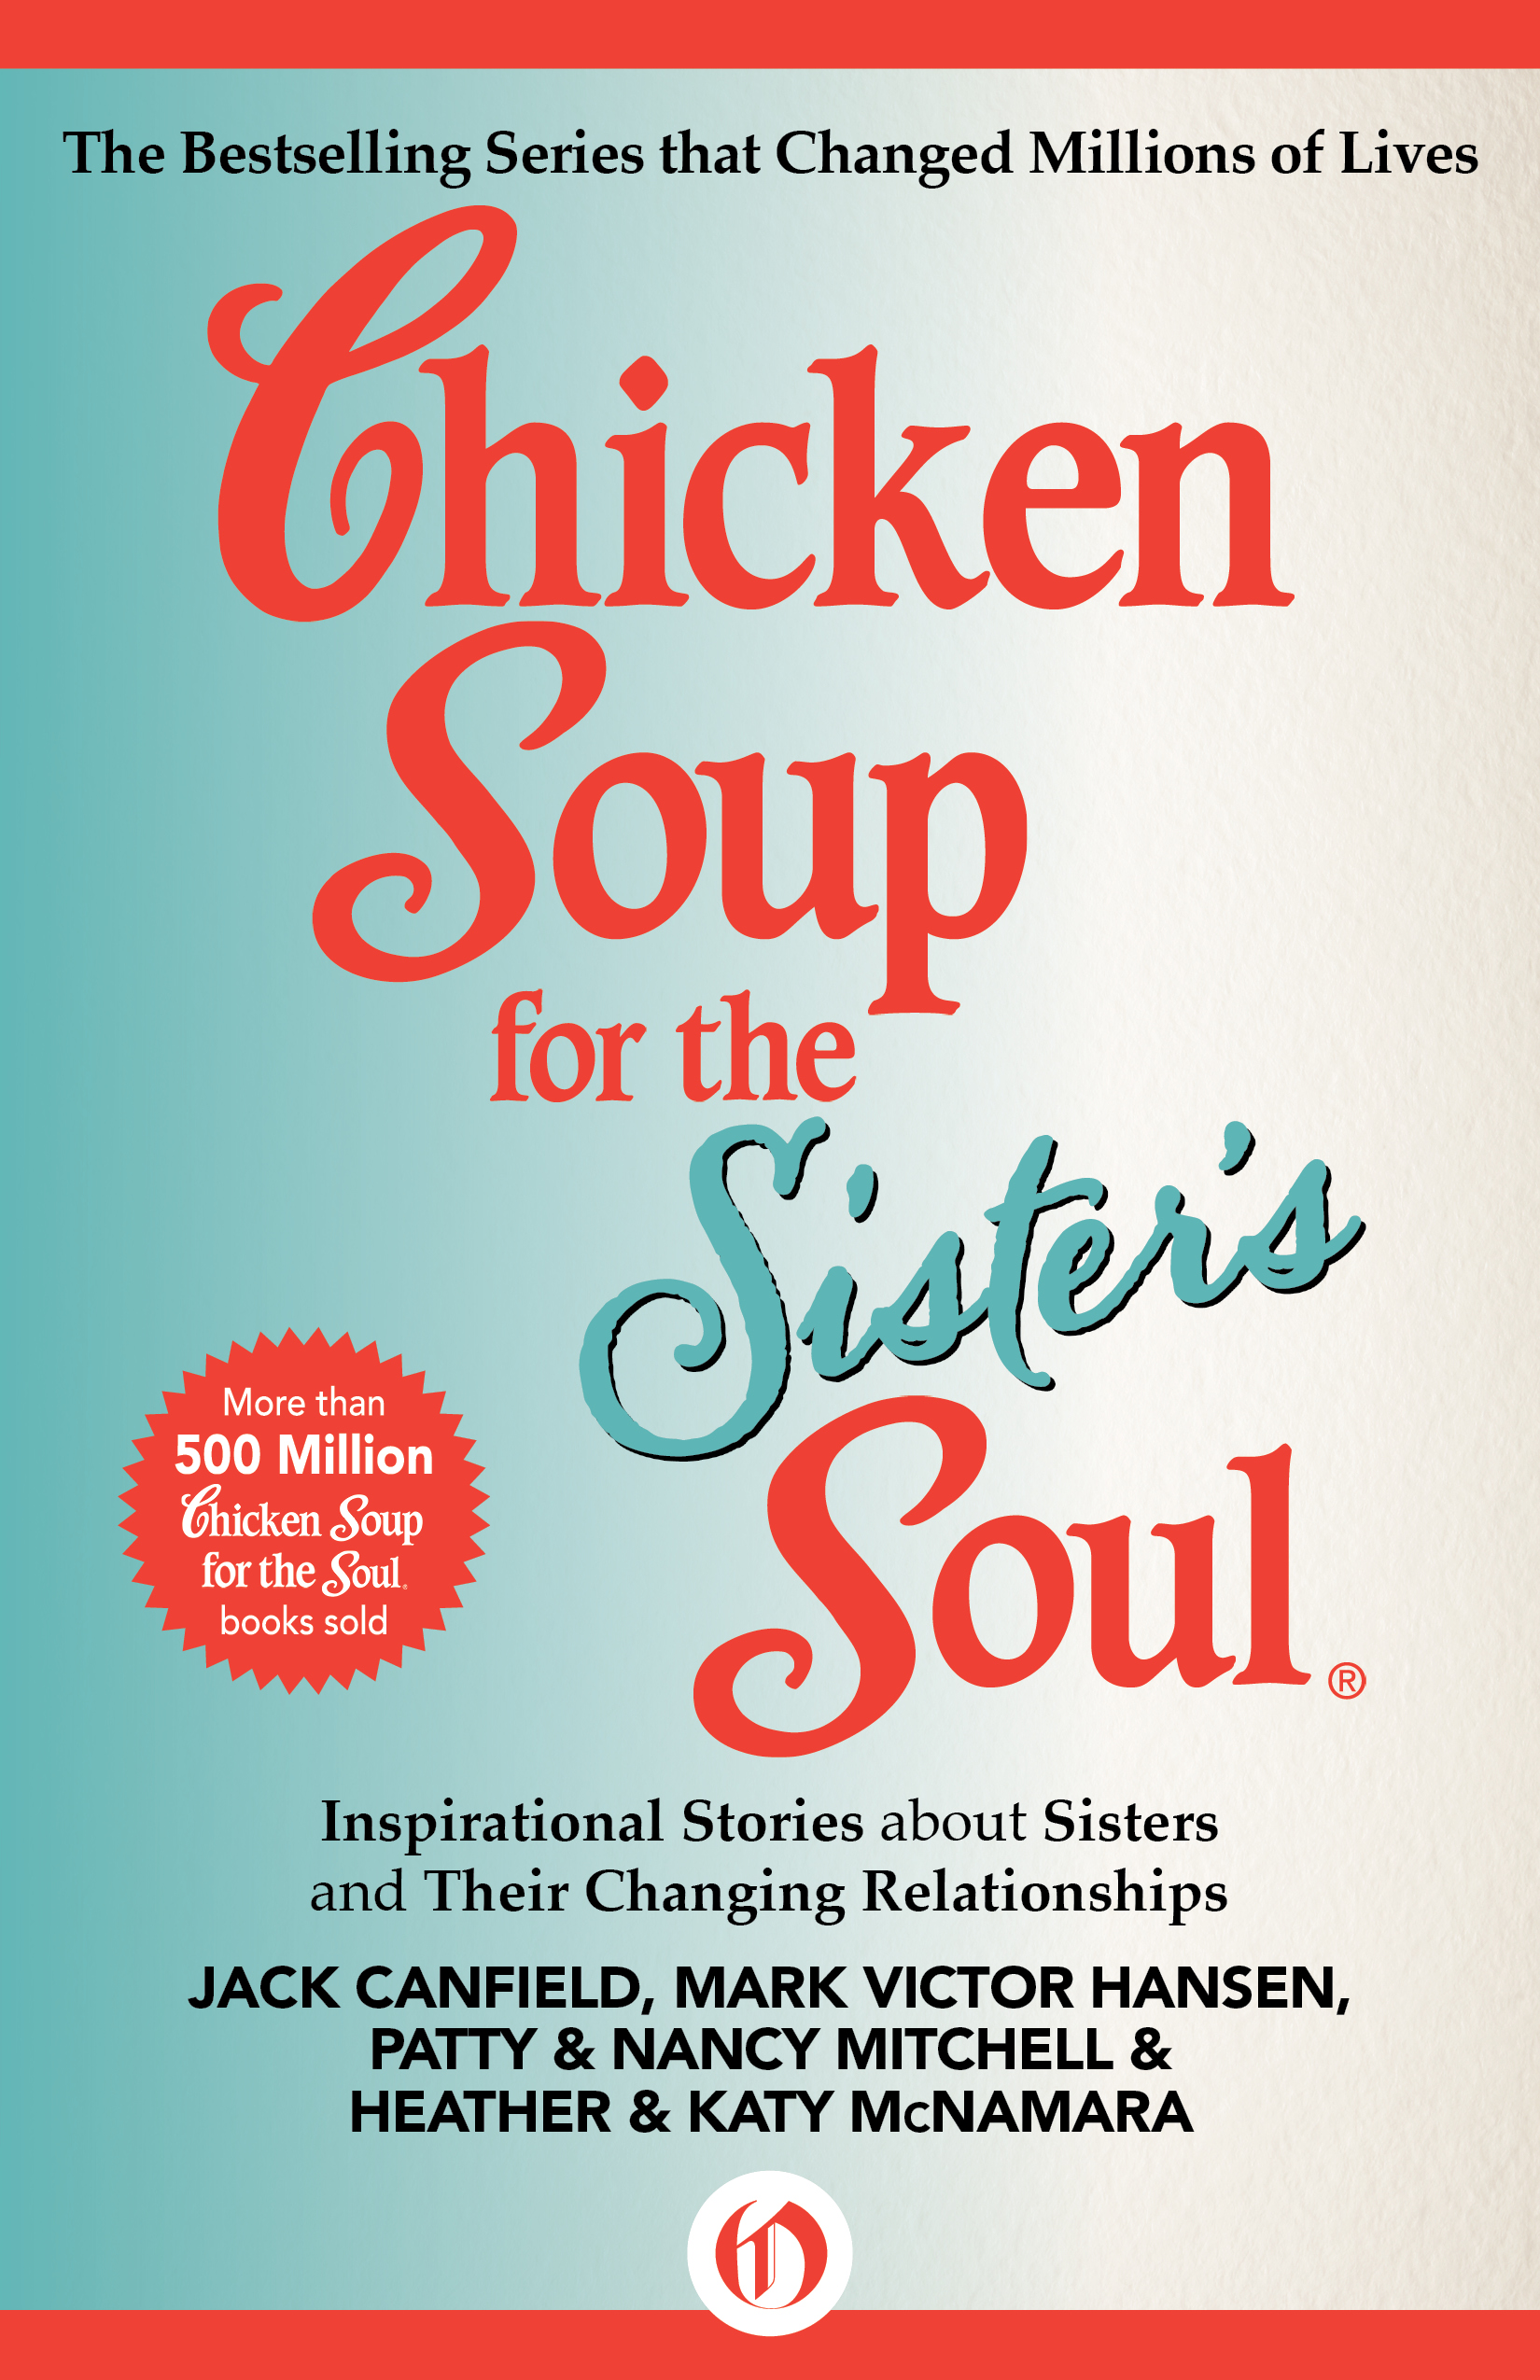 Chicken Soup for the Sister's Soul By: Heather McNamara,Jack Canfield,Katy McNamara,Mark Victor Hansen,Nancy Mitchell,Patty Mitchell